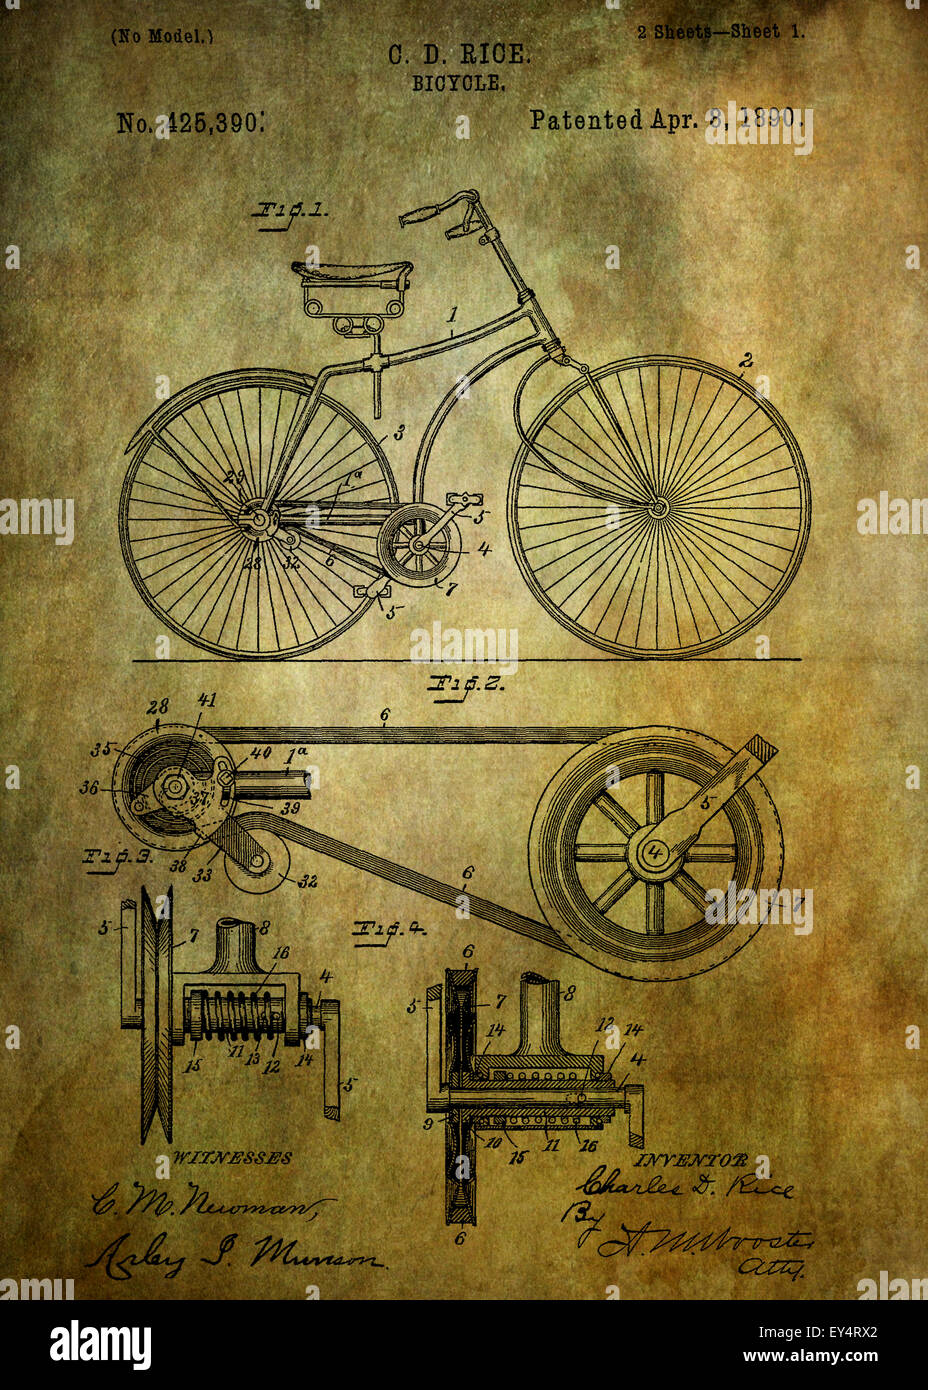 Bicycle patent from 1890 Patent Art - Fine Art Photograph Based On Original Patent Artwork Researched  And Enhanced - Stock Image